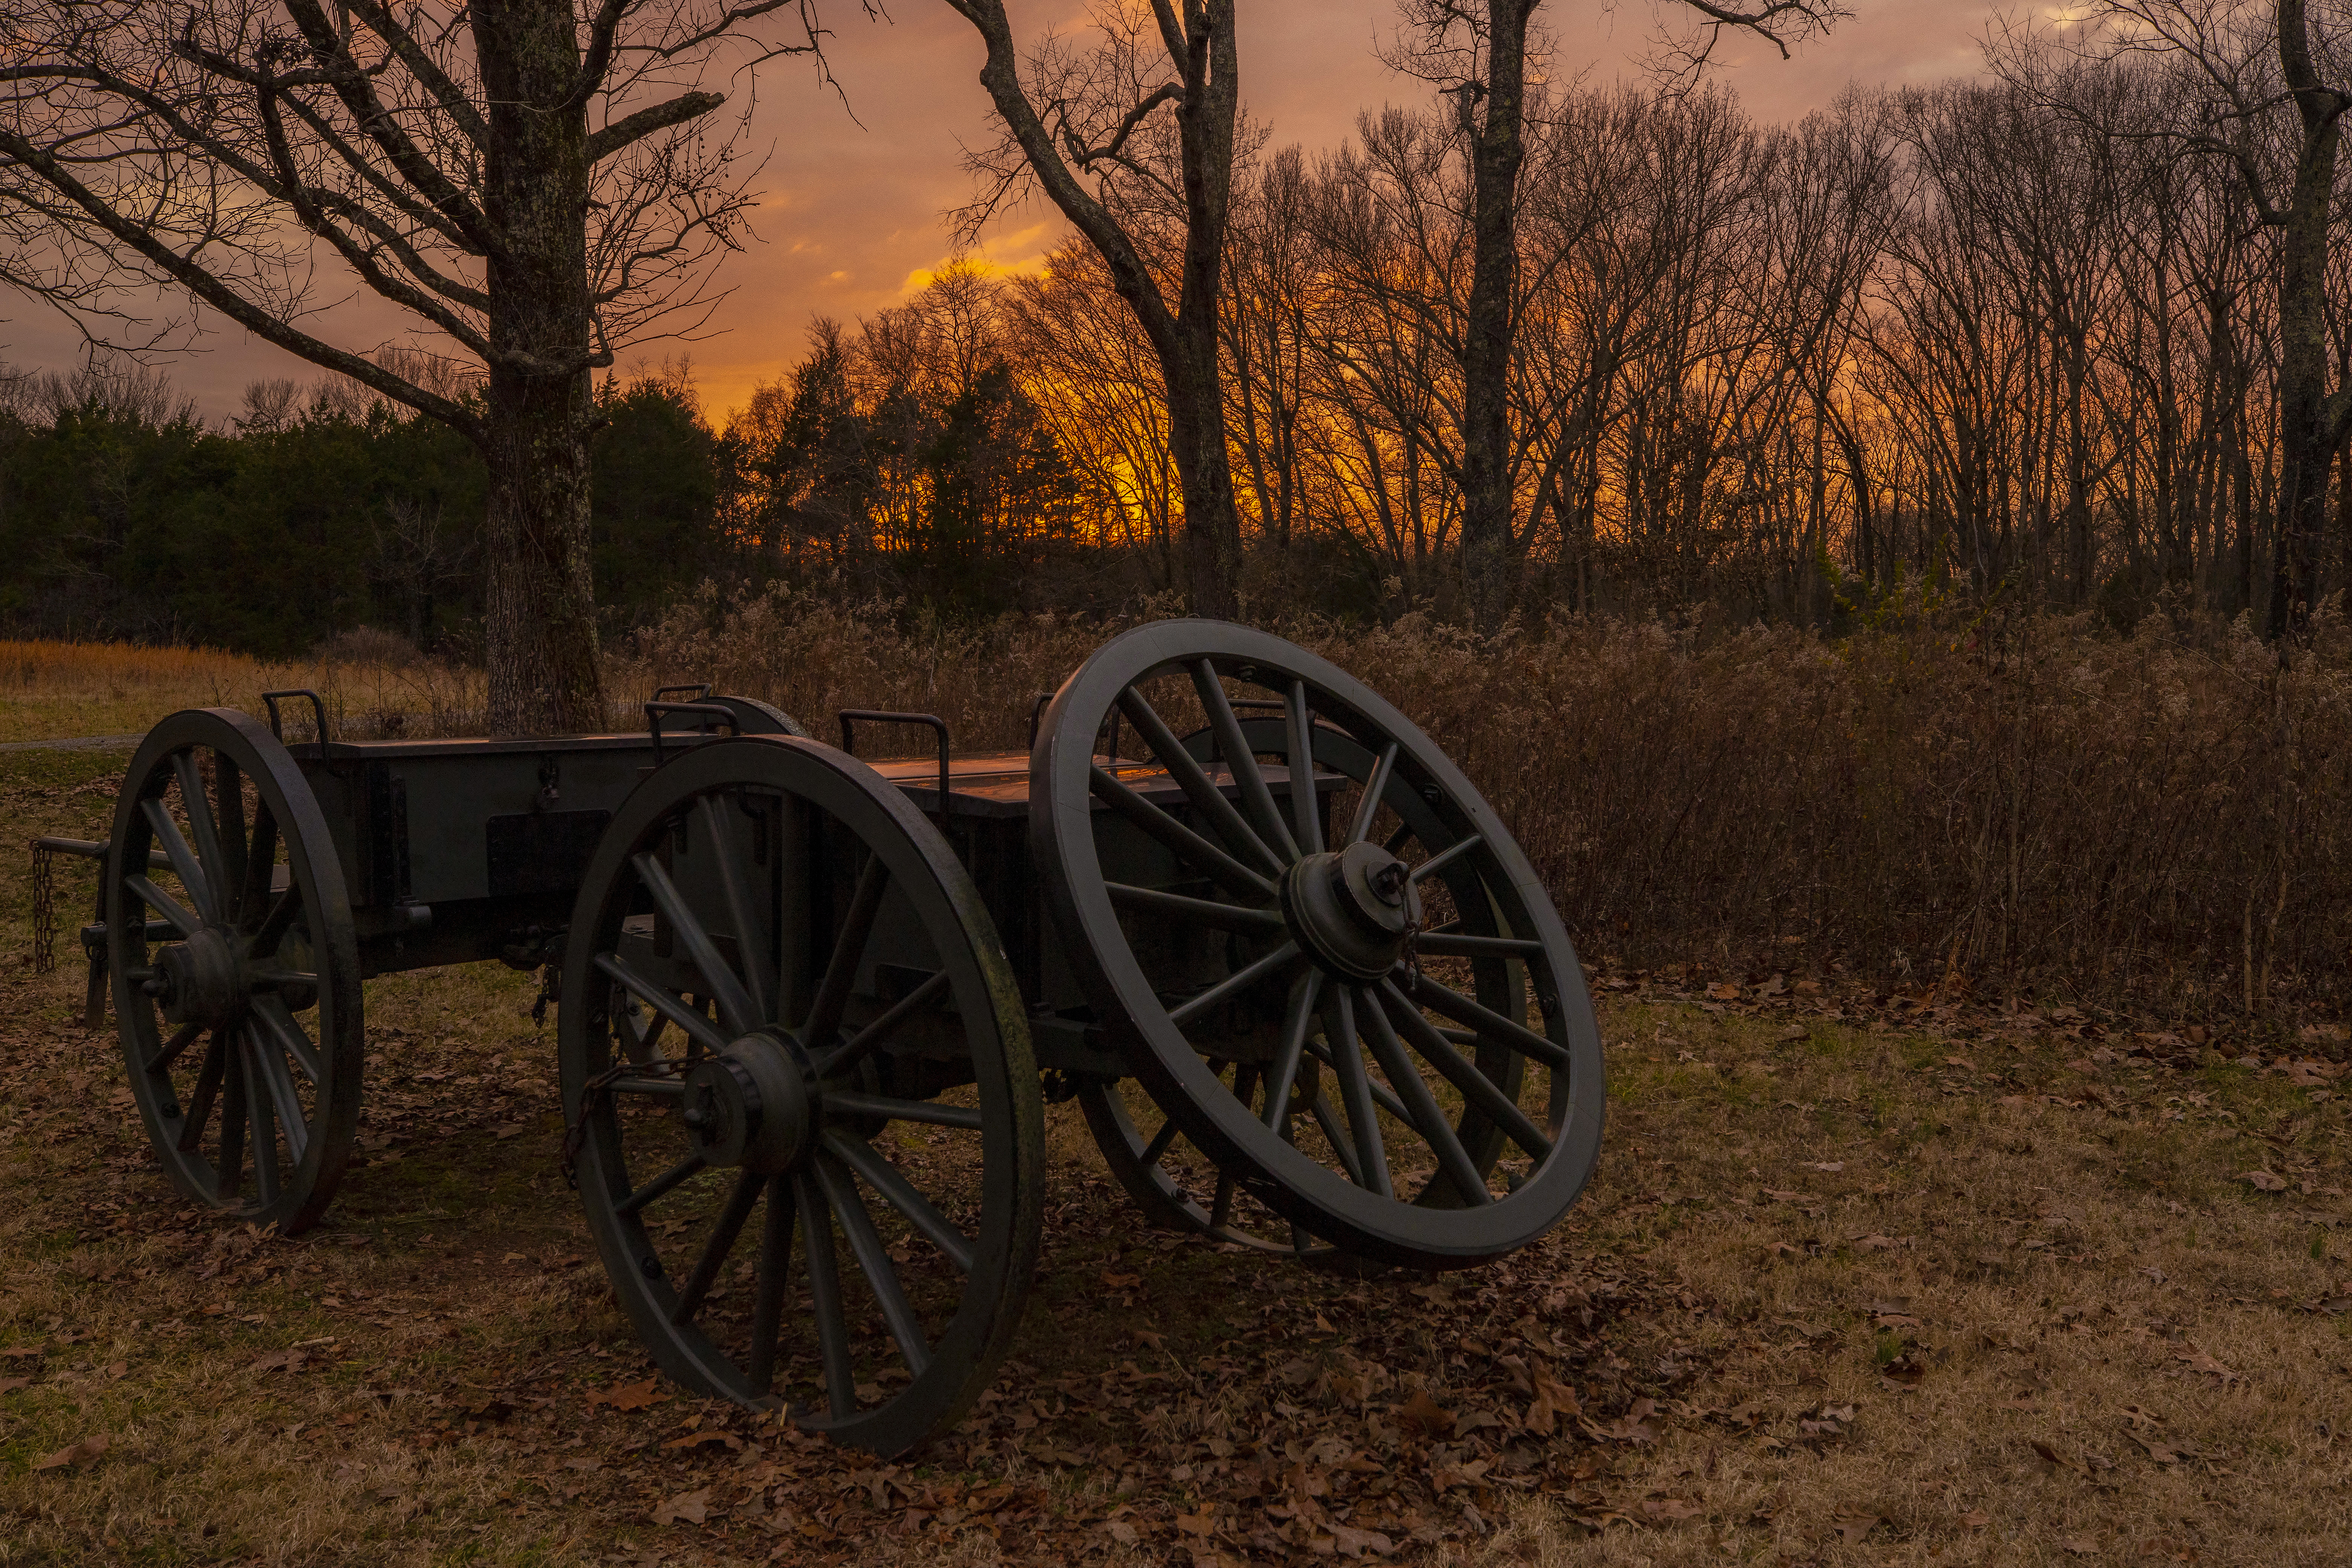 Jennifer Rasmussen won the historical and cultural category with this photo of the Stones River National Historic Battlefield in Tennessee.